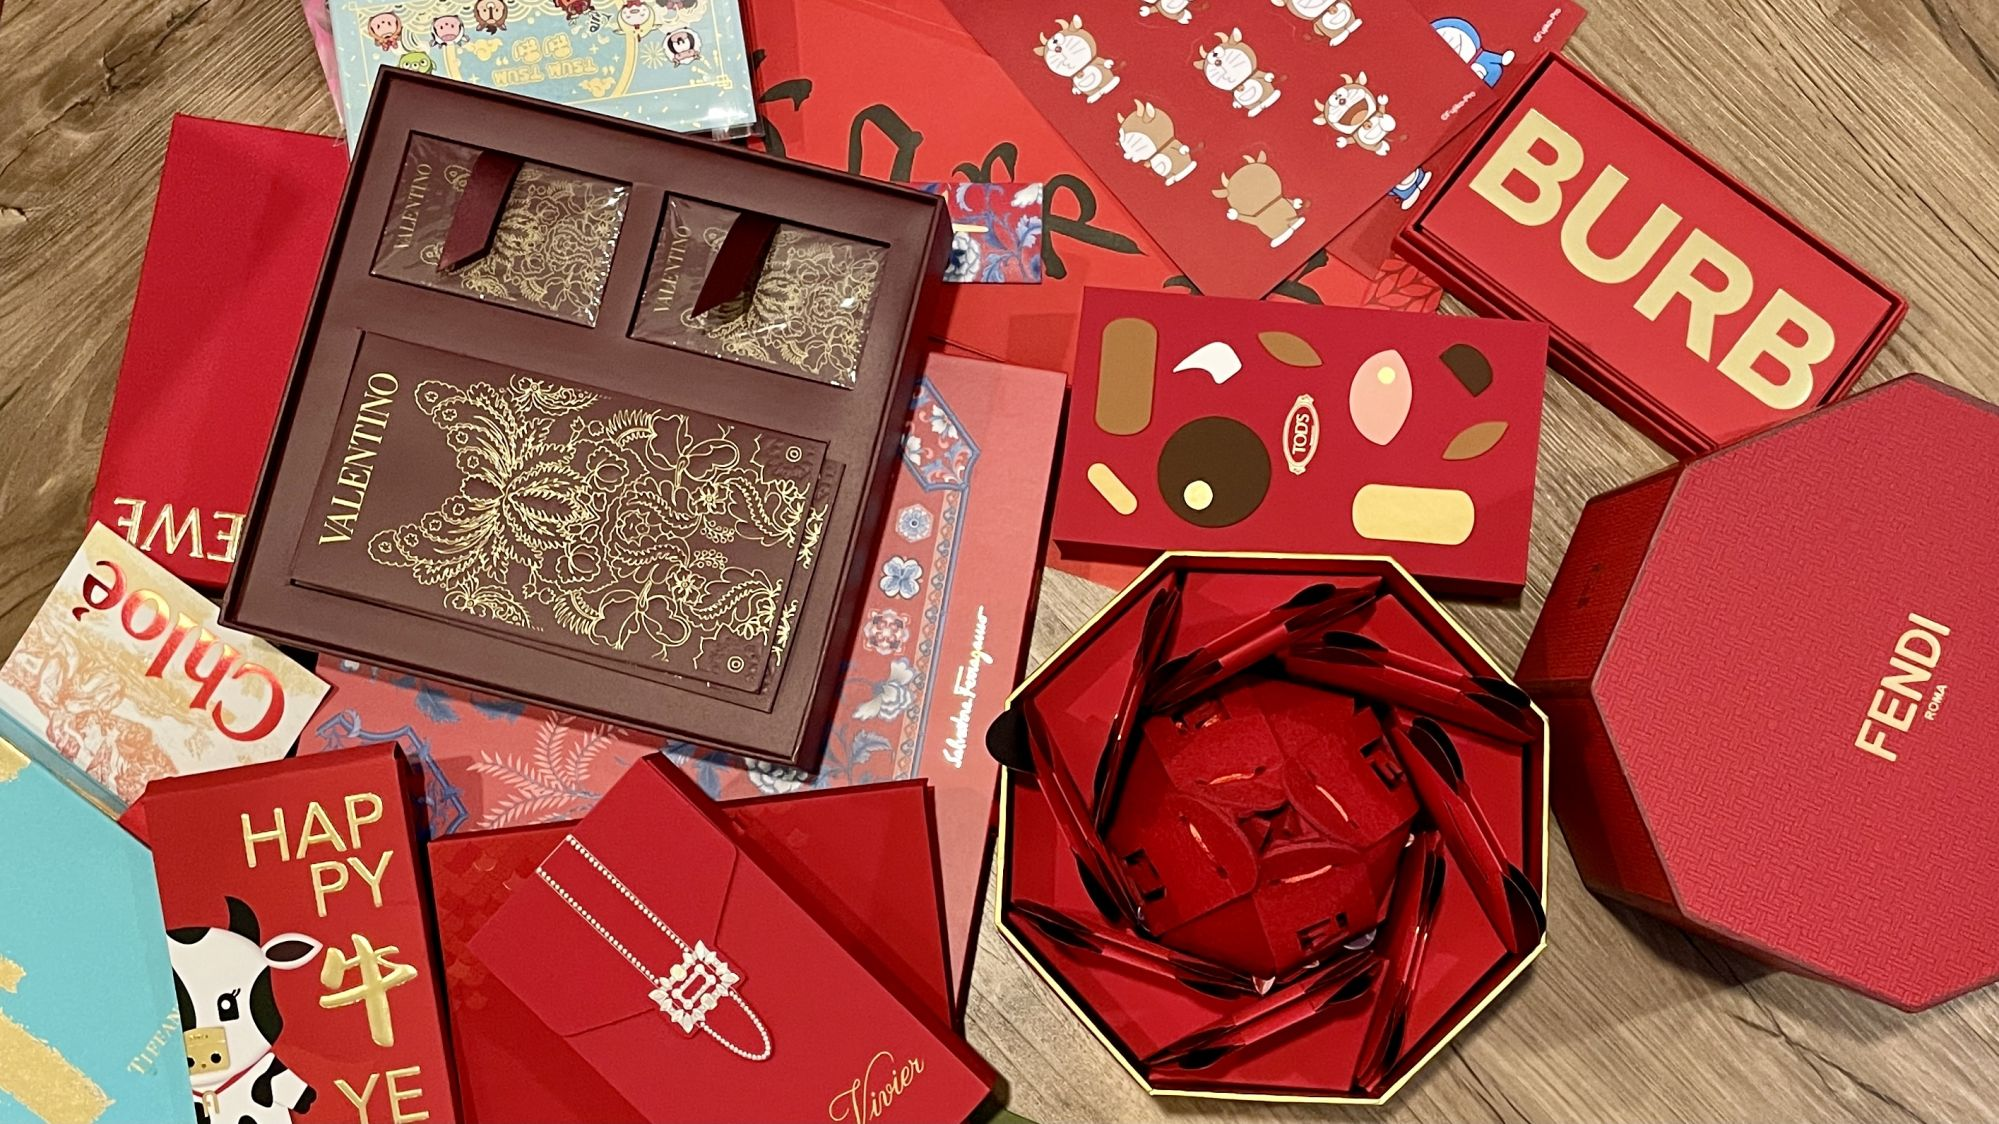 Chinese New Year 2021: The Best Red Packets This Year of the Ox